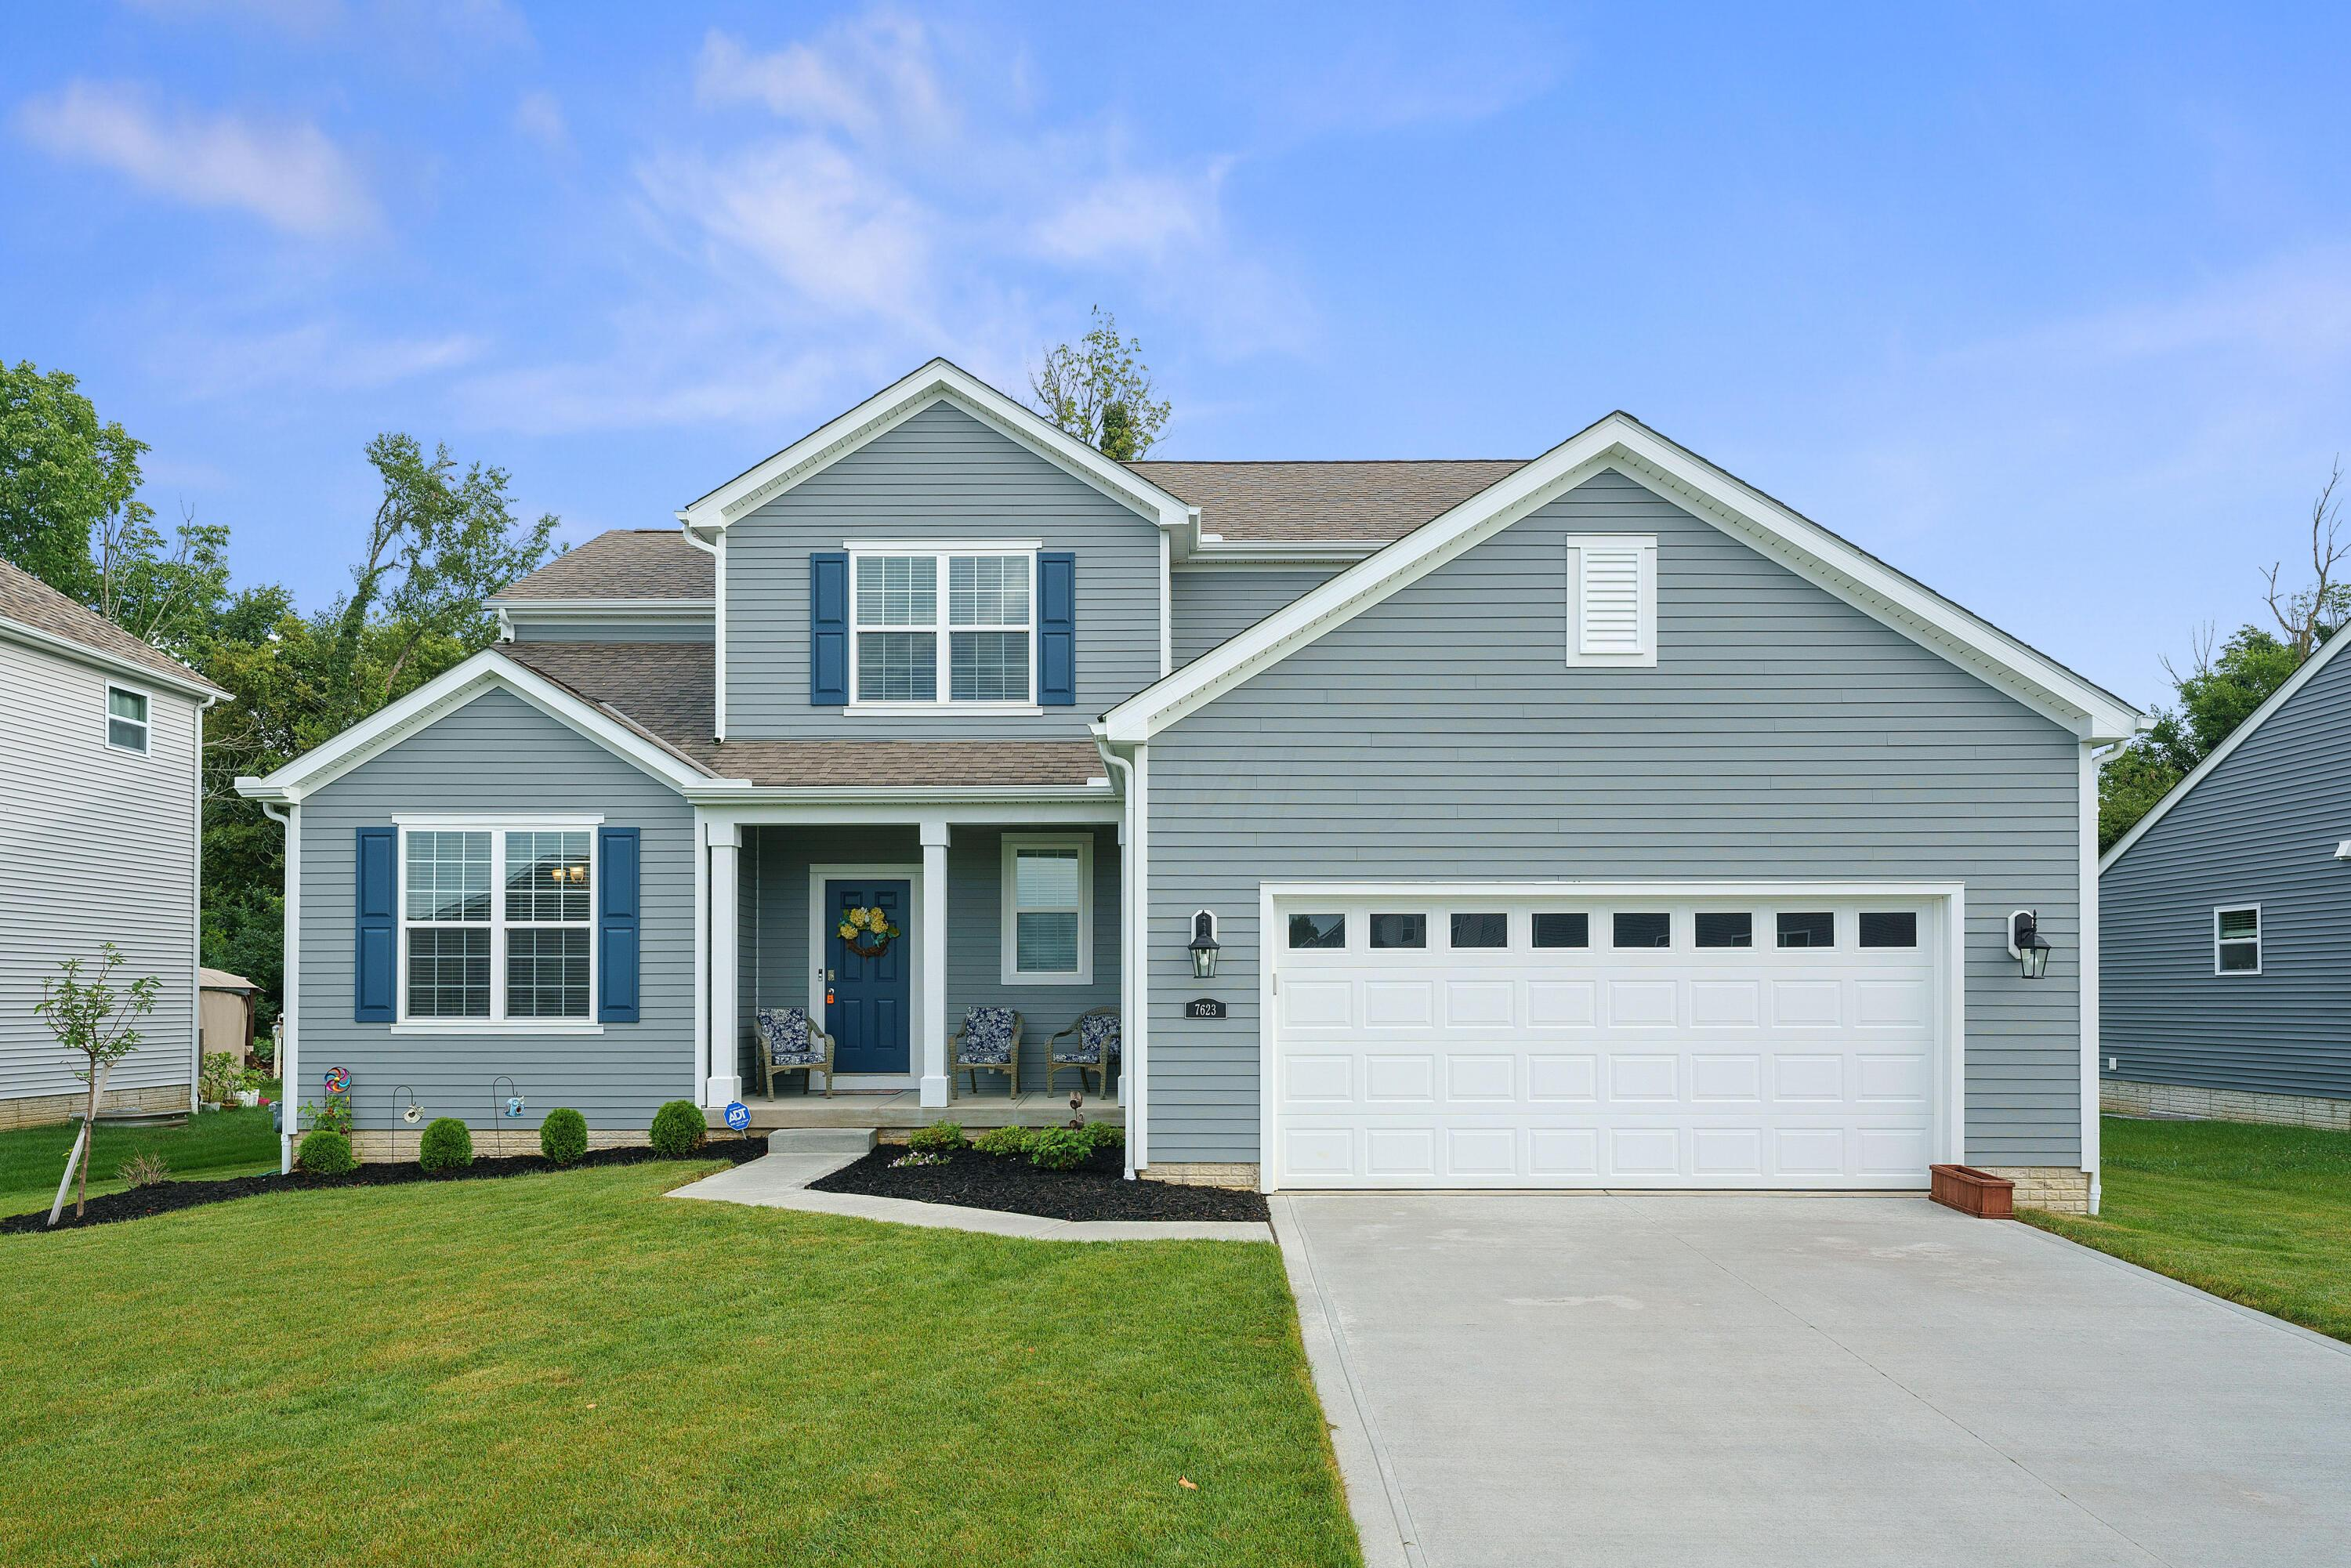 Photo of 7623 Gundy Drive, Canal Winchester, OH 43110